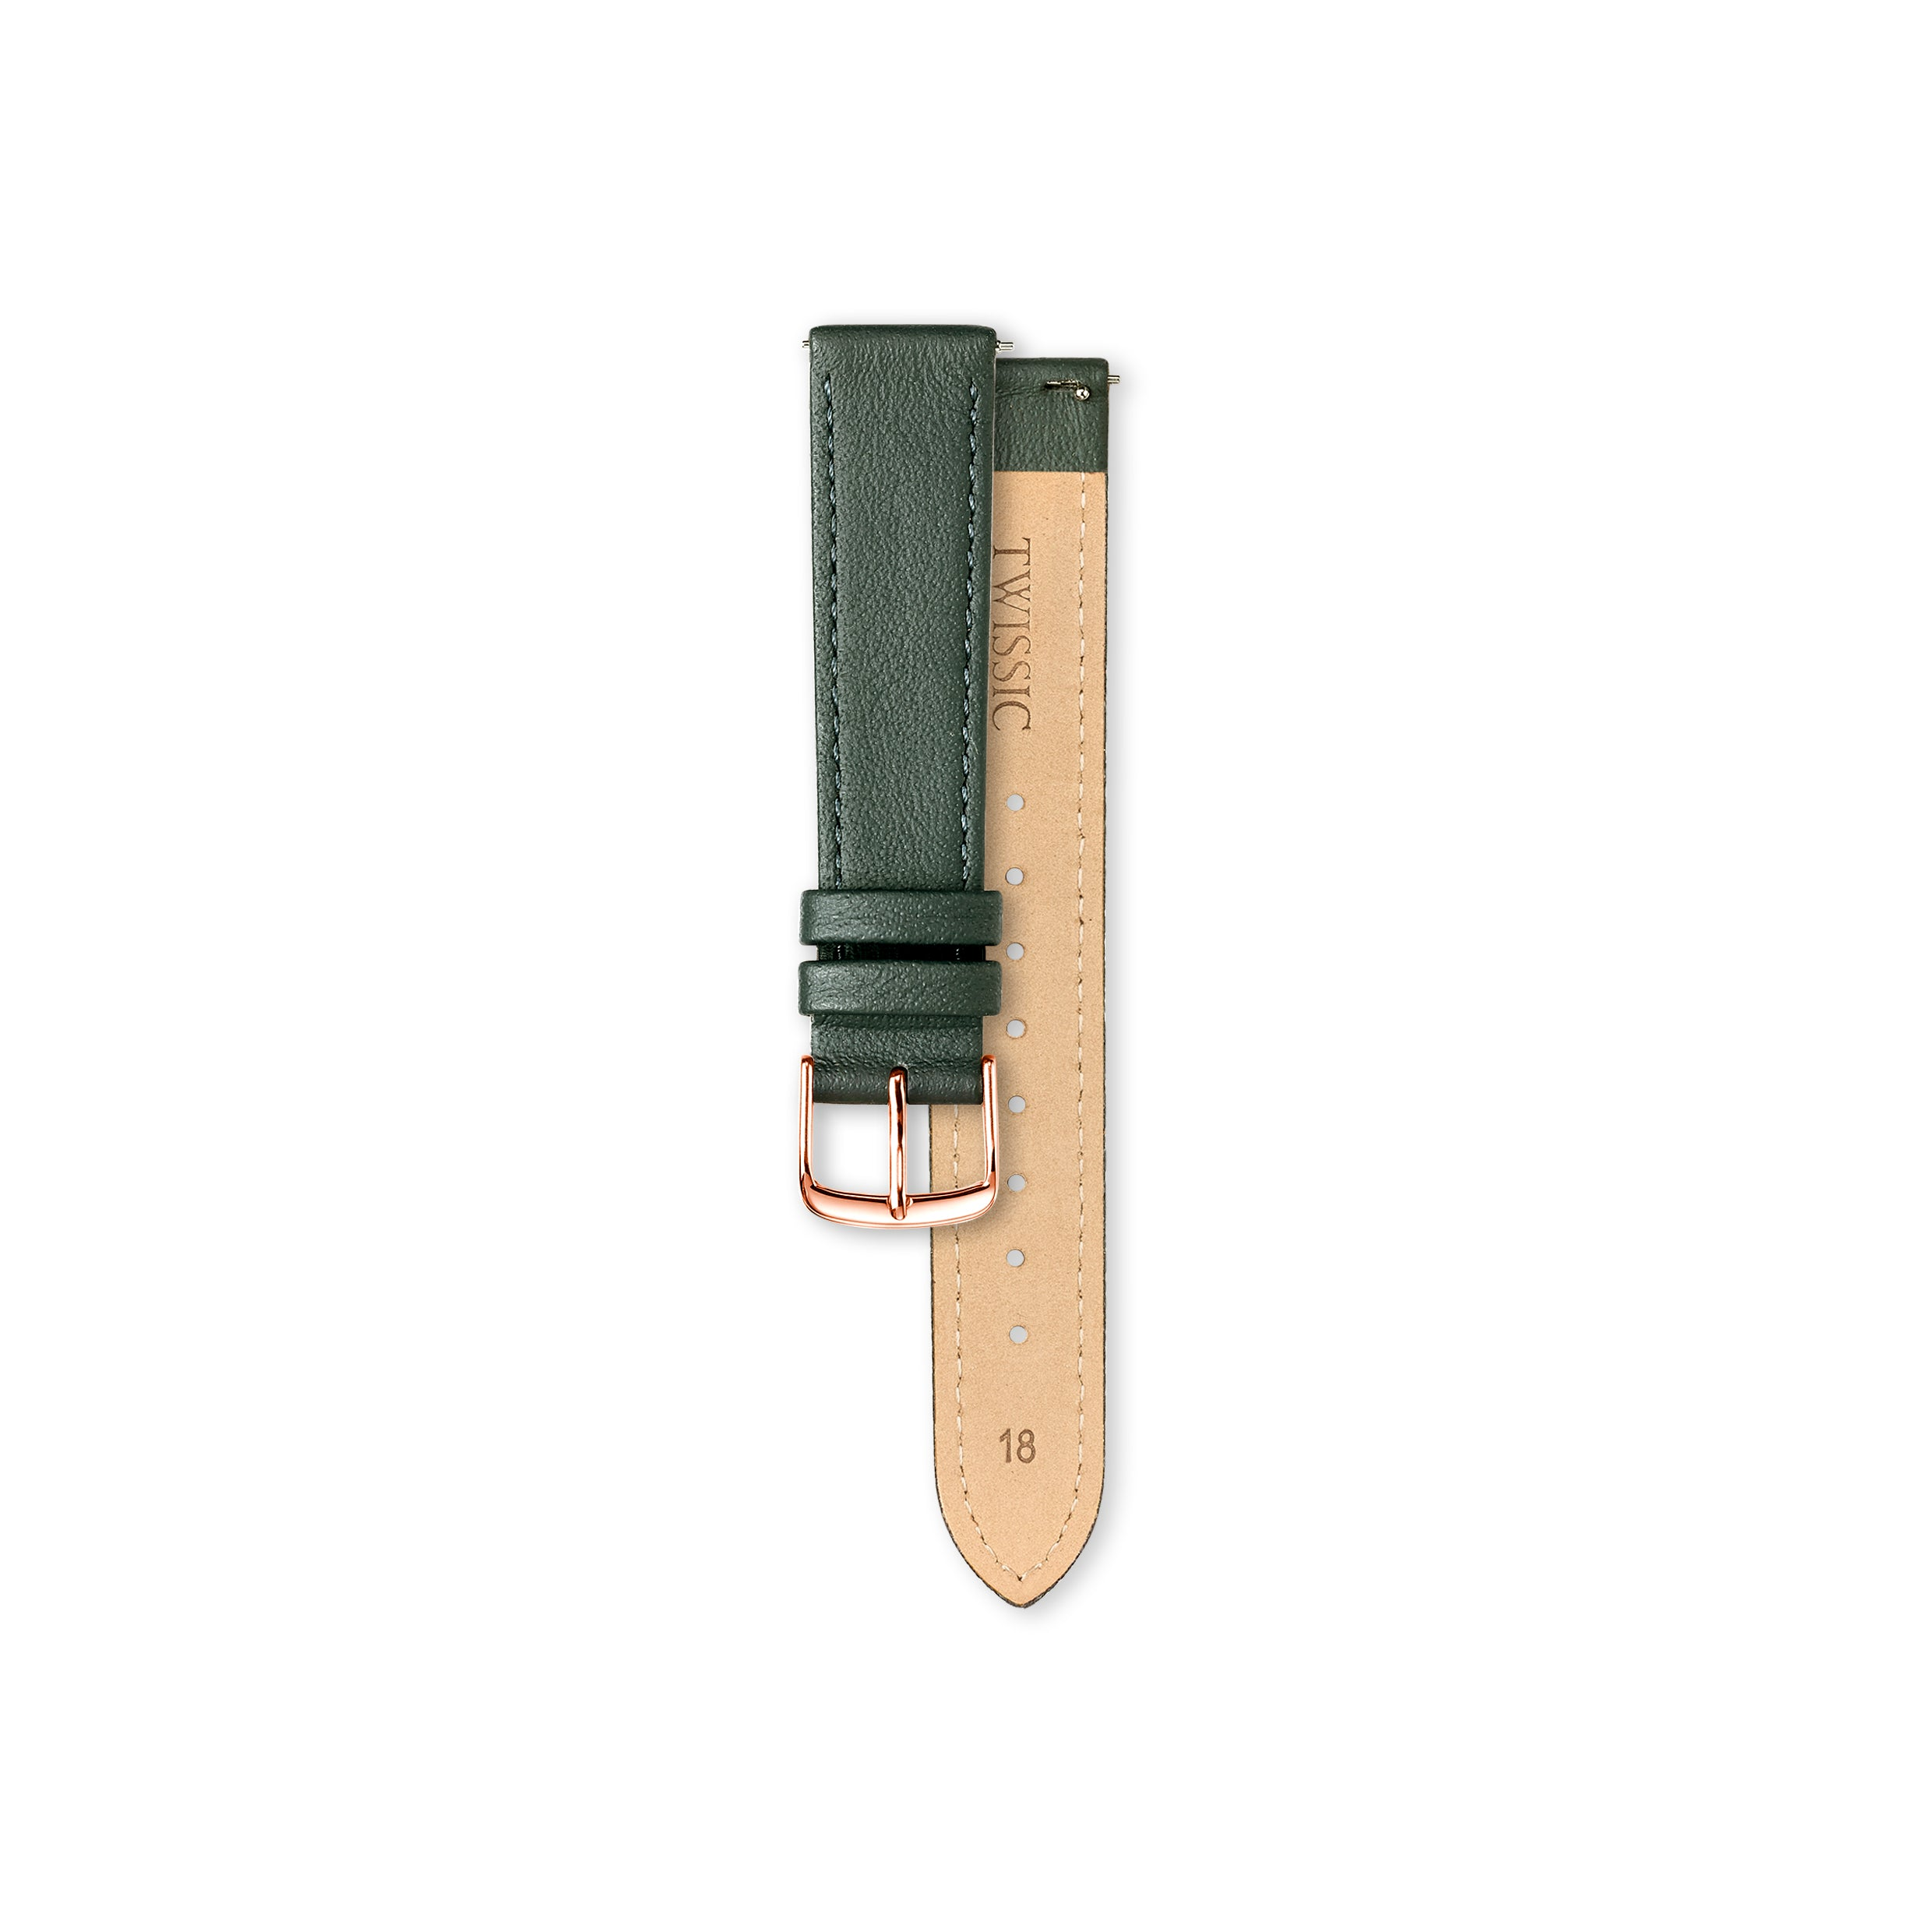 Christmas gift set Large (38mm/18mm) - Brick Red & Rifle Green Straps